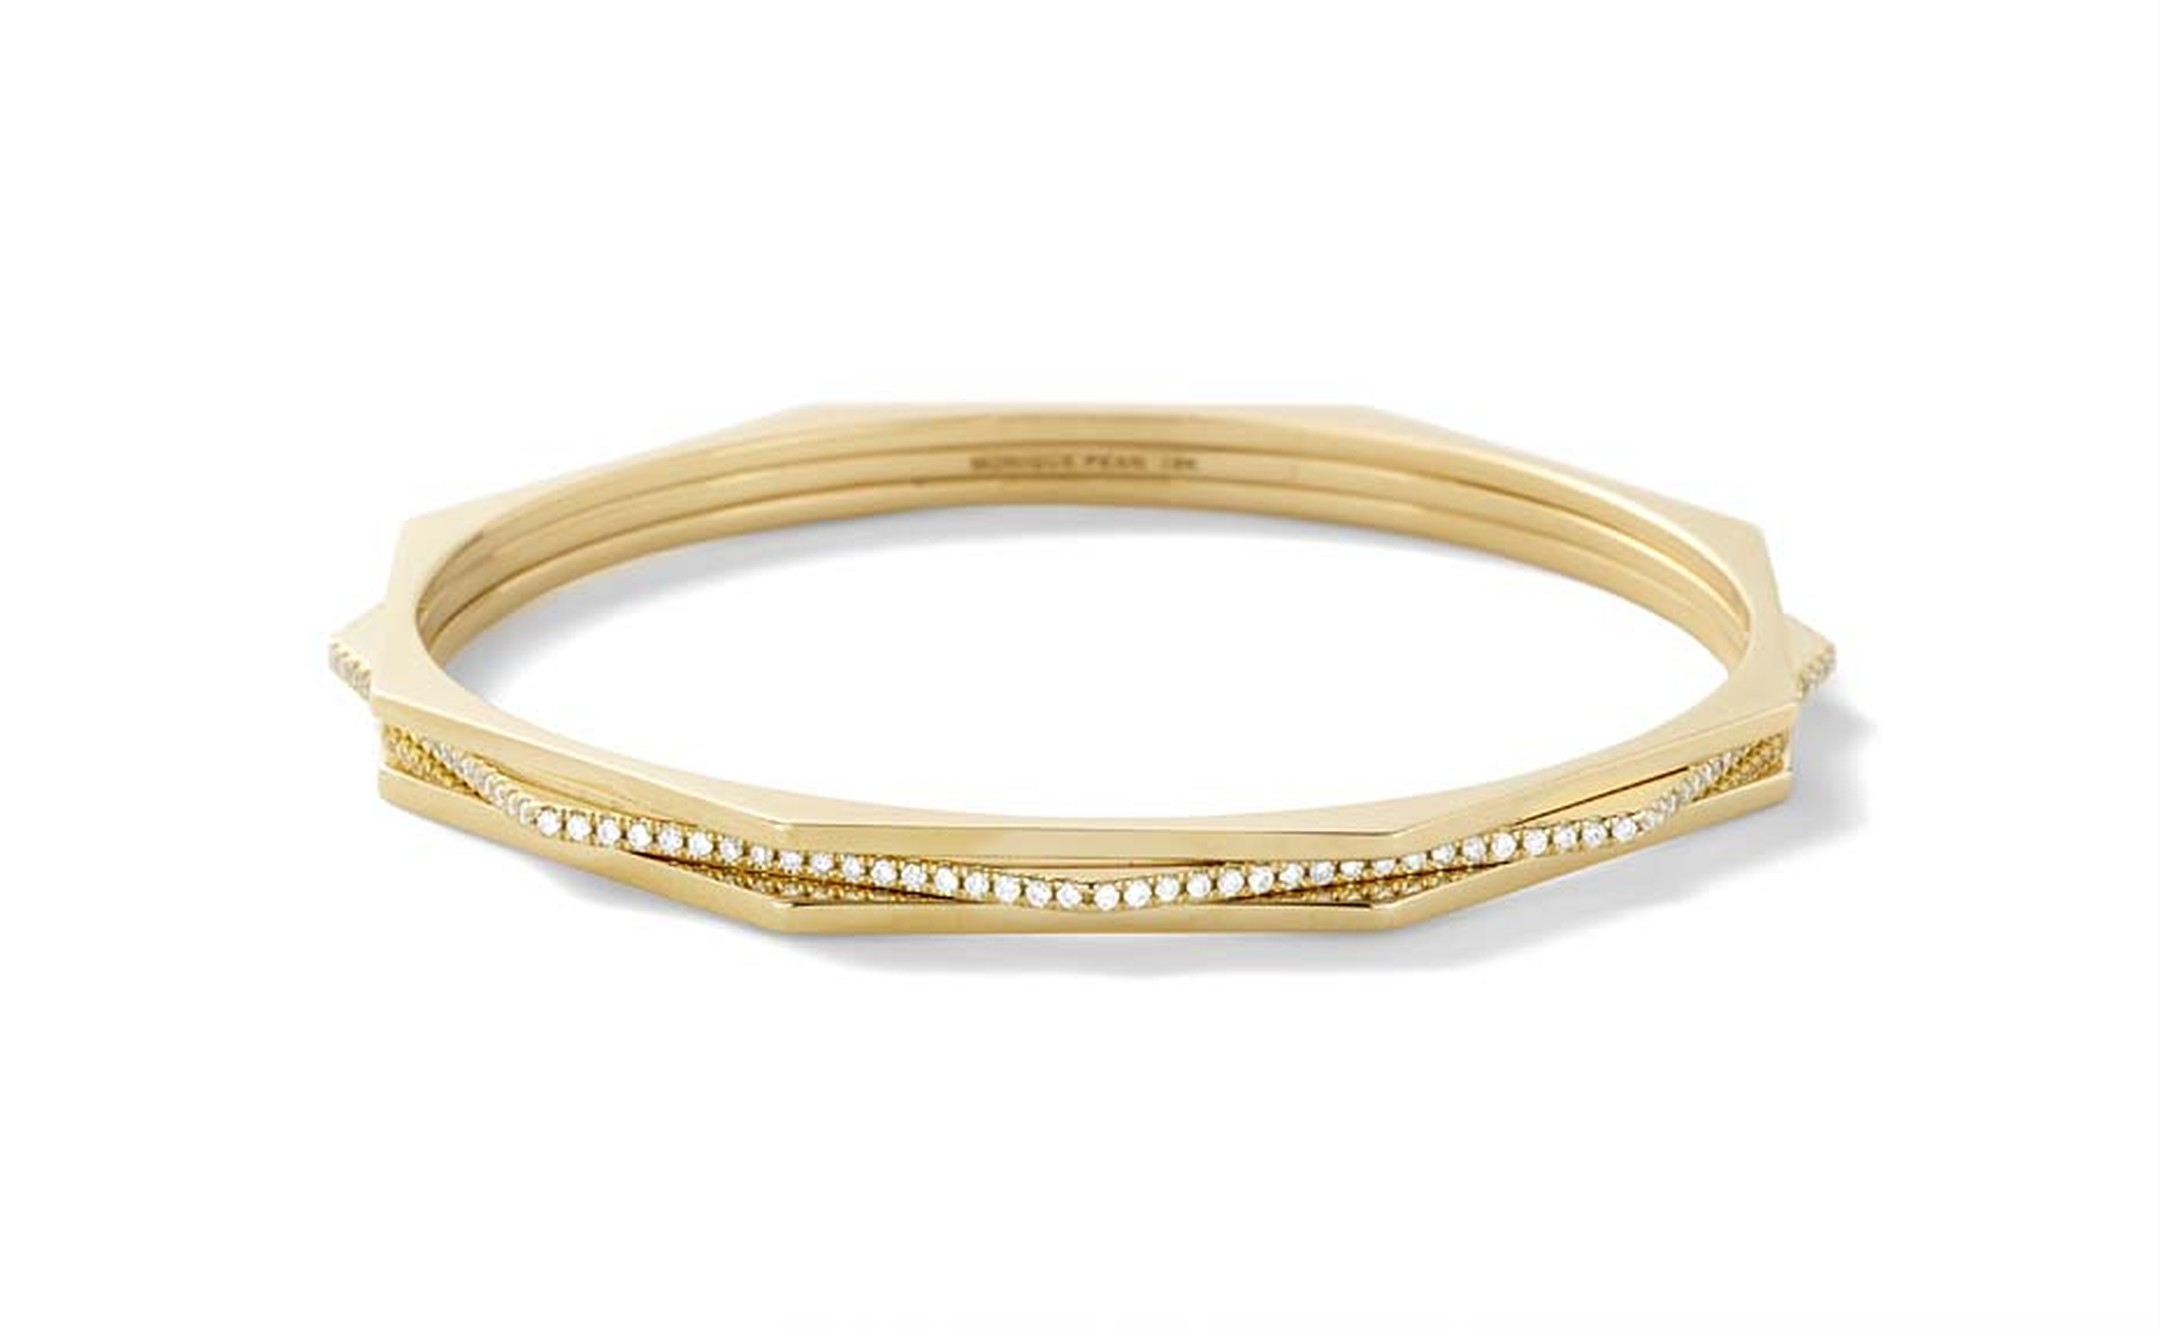 Hachi octagonal Monique Péan bangle with white diamond pavé, set in recycled yellow gold.